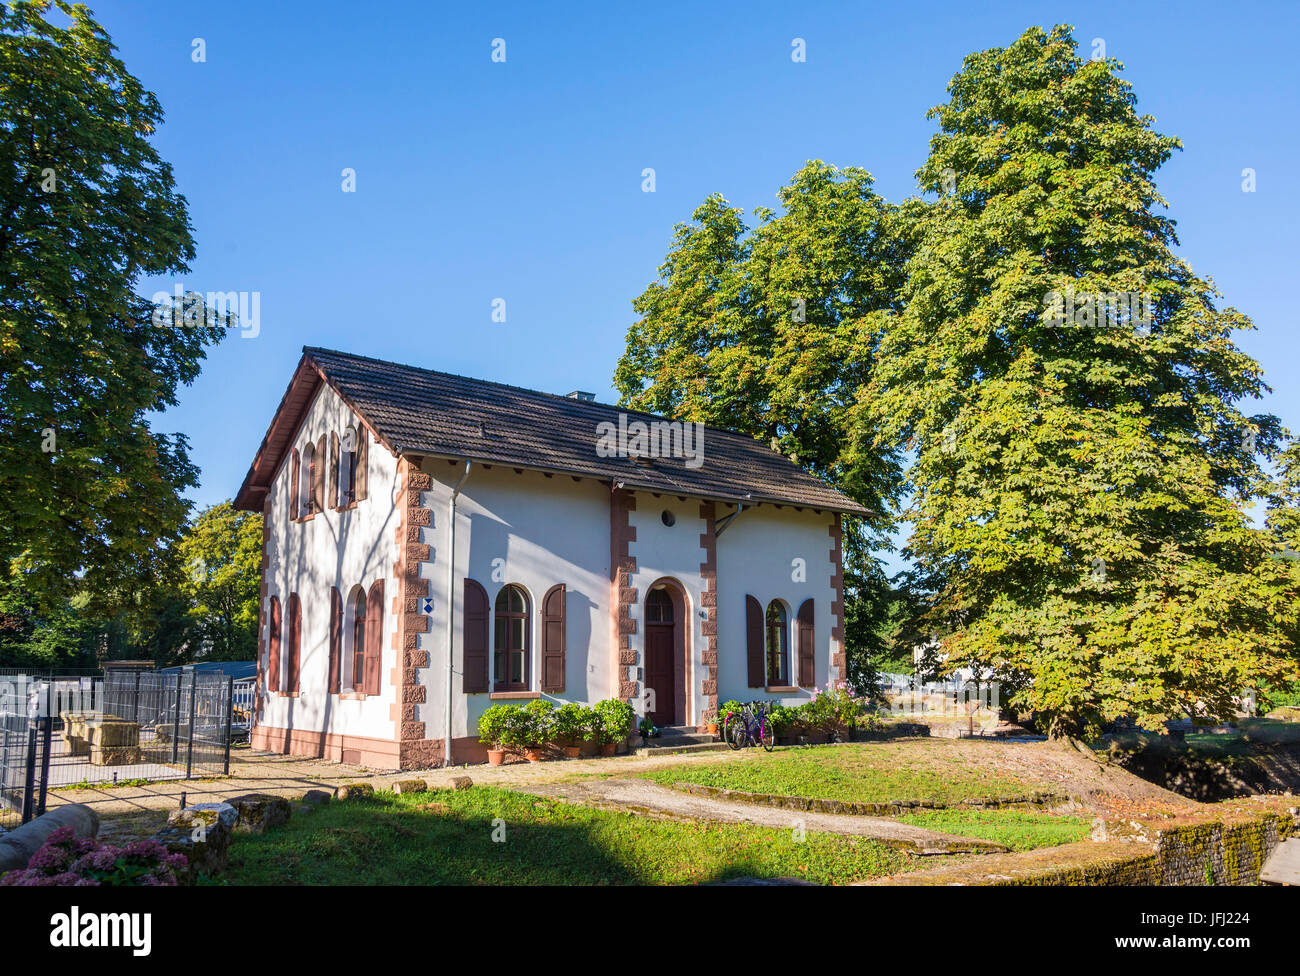 Europe, Germany, Rhineland-Palatinate, the Moselle, Moselle valley, Trier, Barbarathermen (thermal spas), Augusta - Stock Image